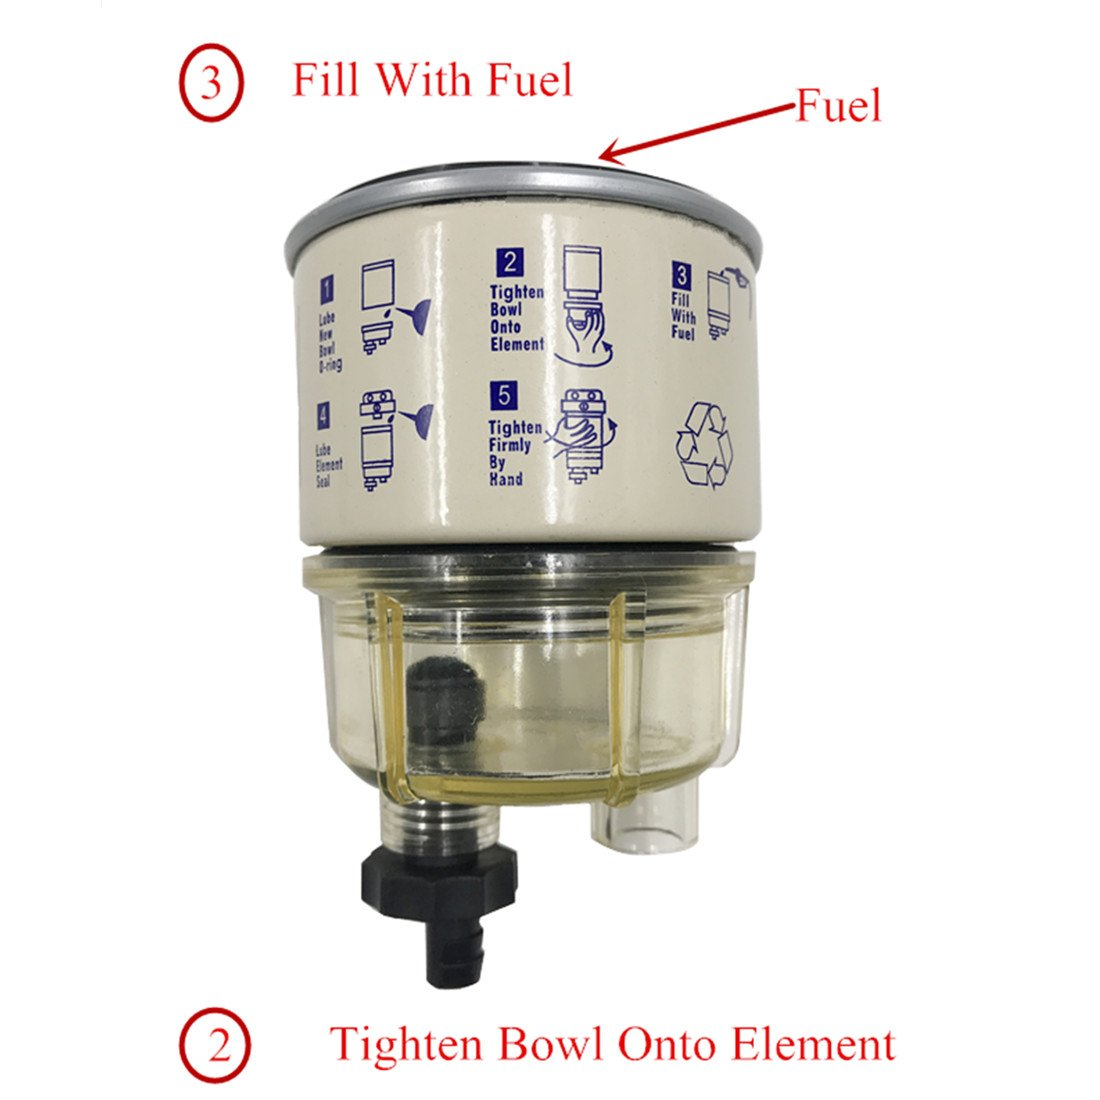 Ifjf R12t Fuel Filter Water Separator 120at Npt Zg1 4 19 Automotive Engine Parts With Fitting Complete Combo Diesel